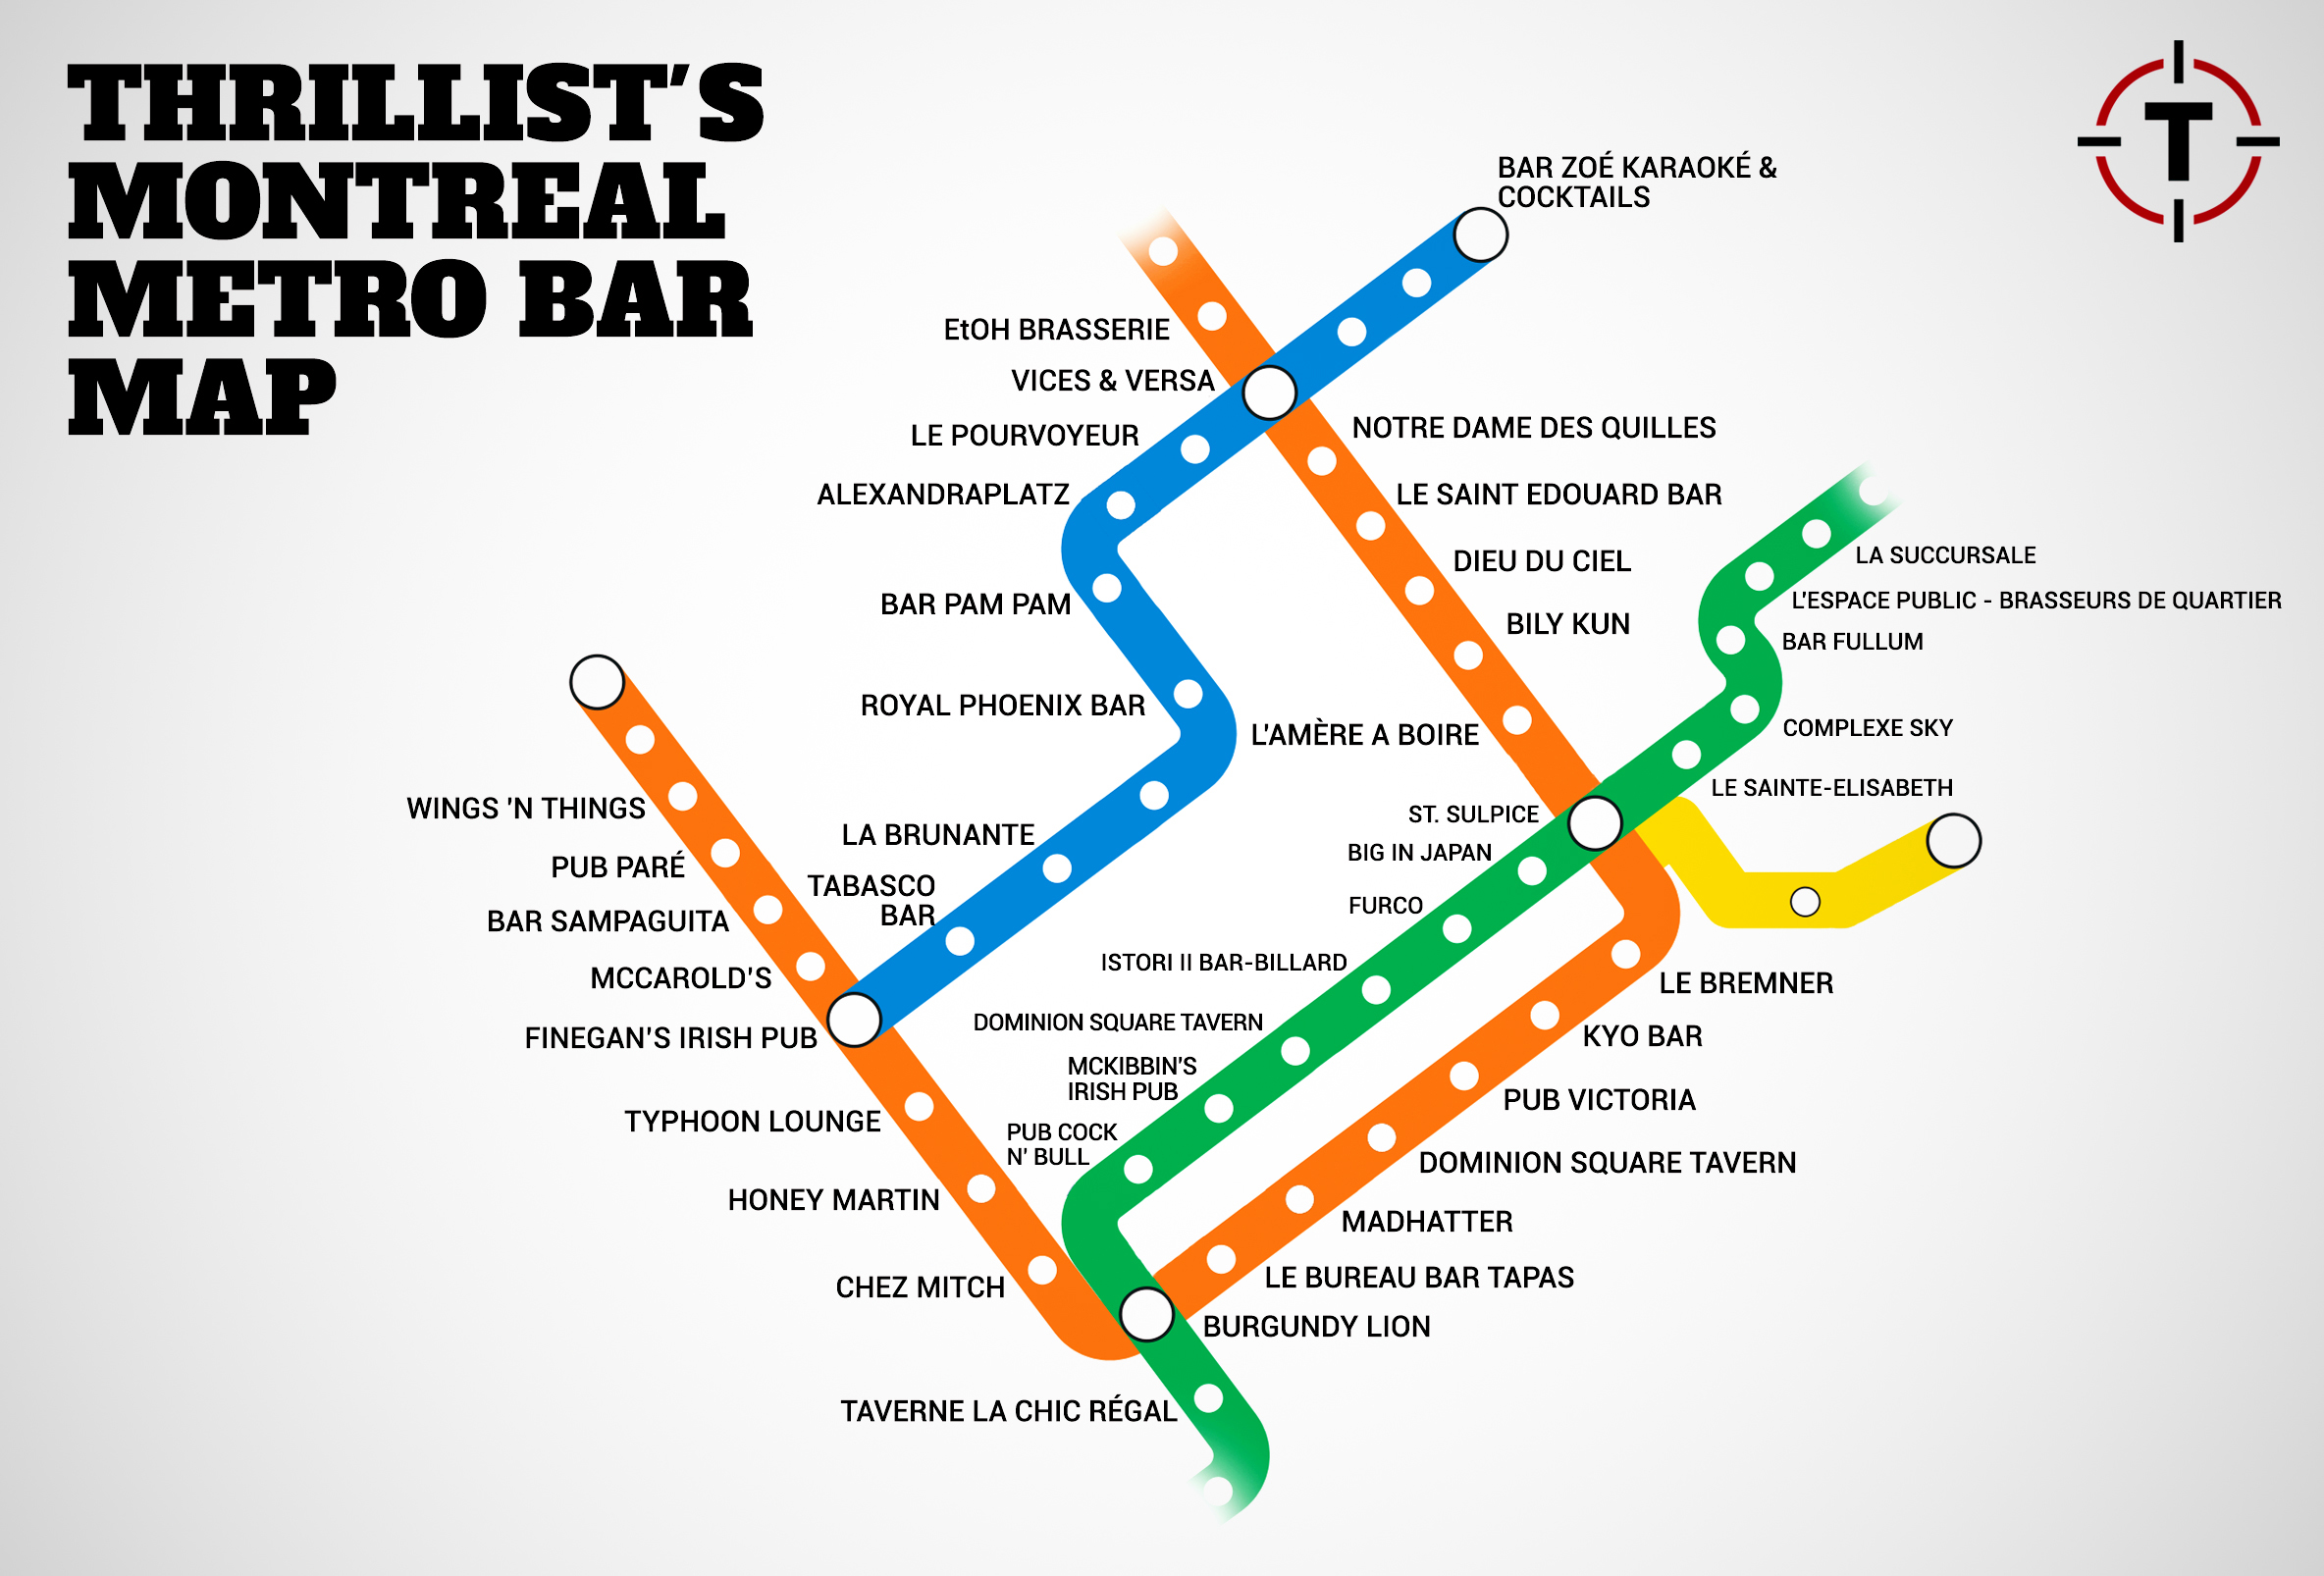 Montreals First Map Of Bars Near The Metro Montreal Metro Bar - Chicago map rosemont